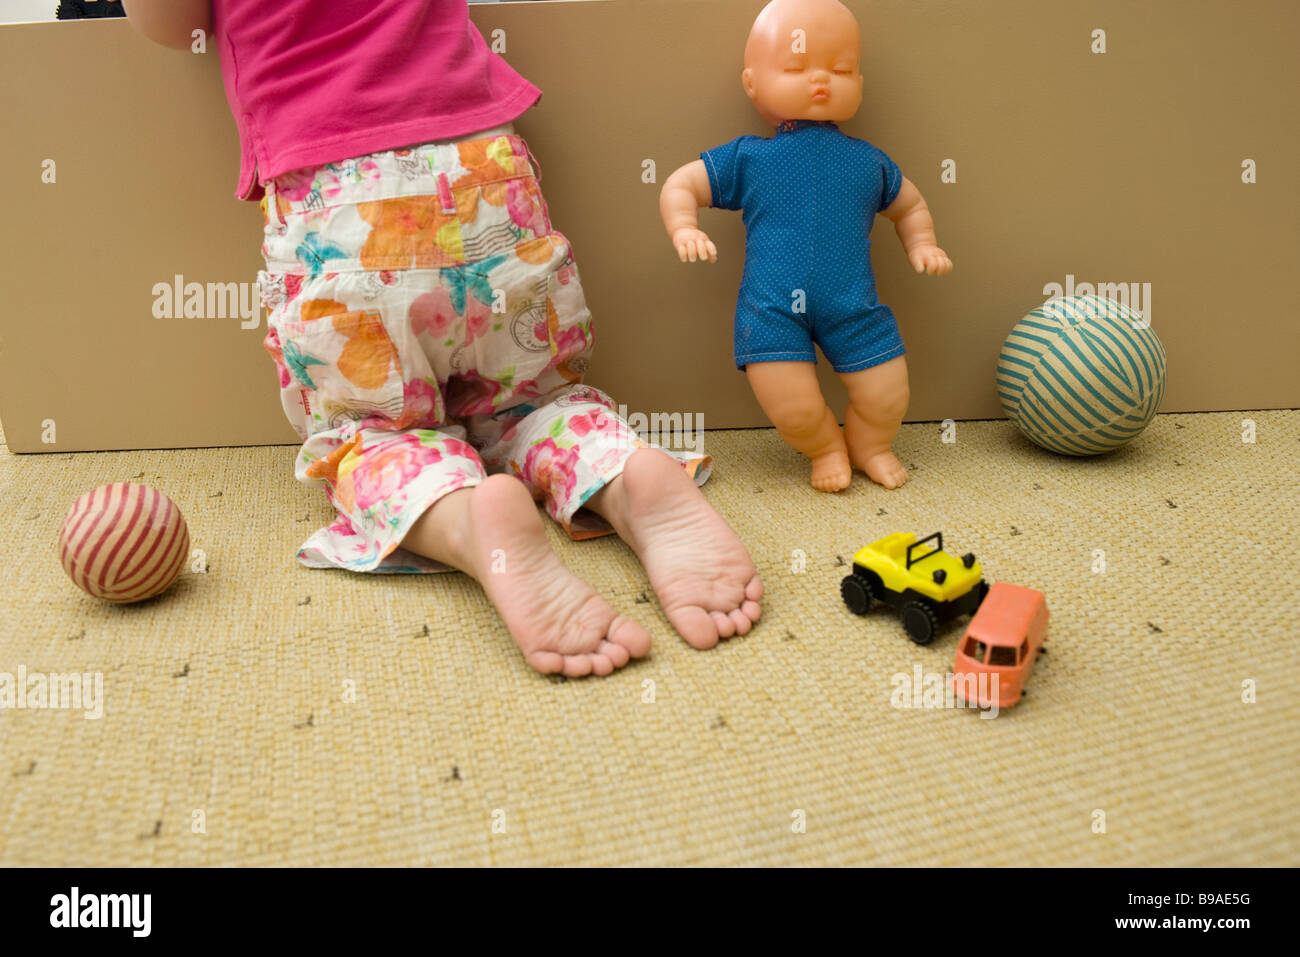 Little girl kneeling on floor with toys, rear view, cropped - Stock Image